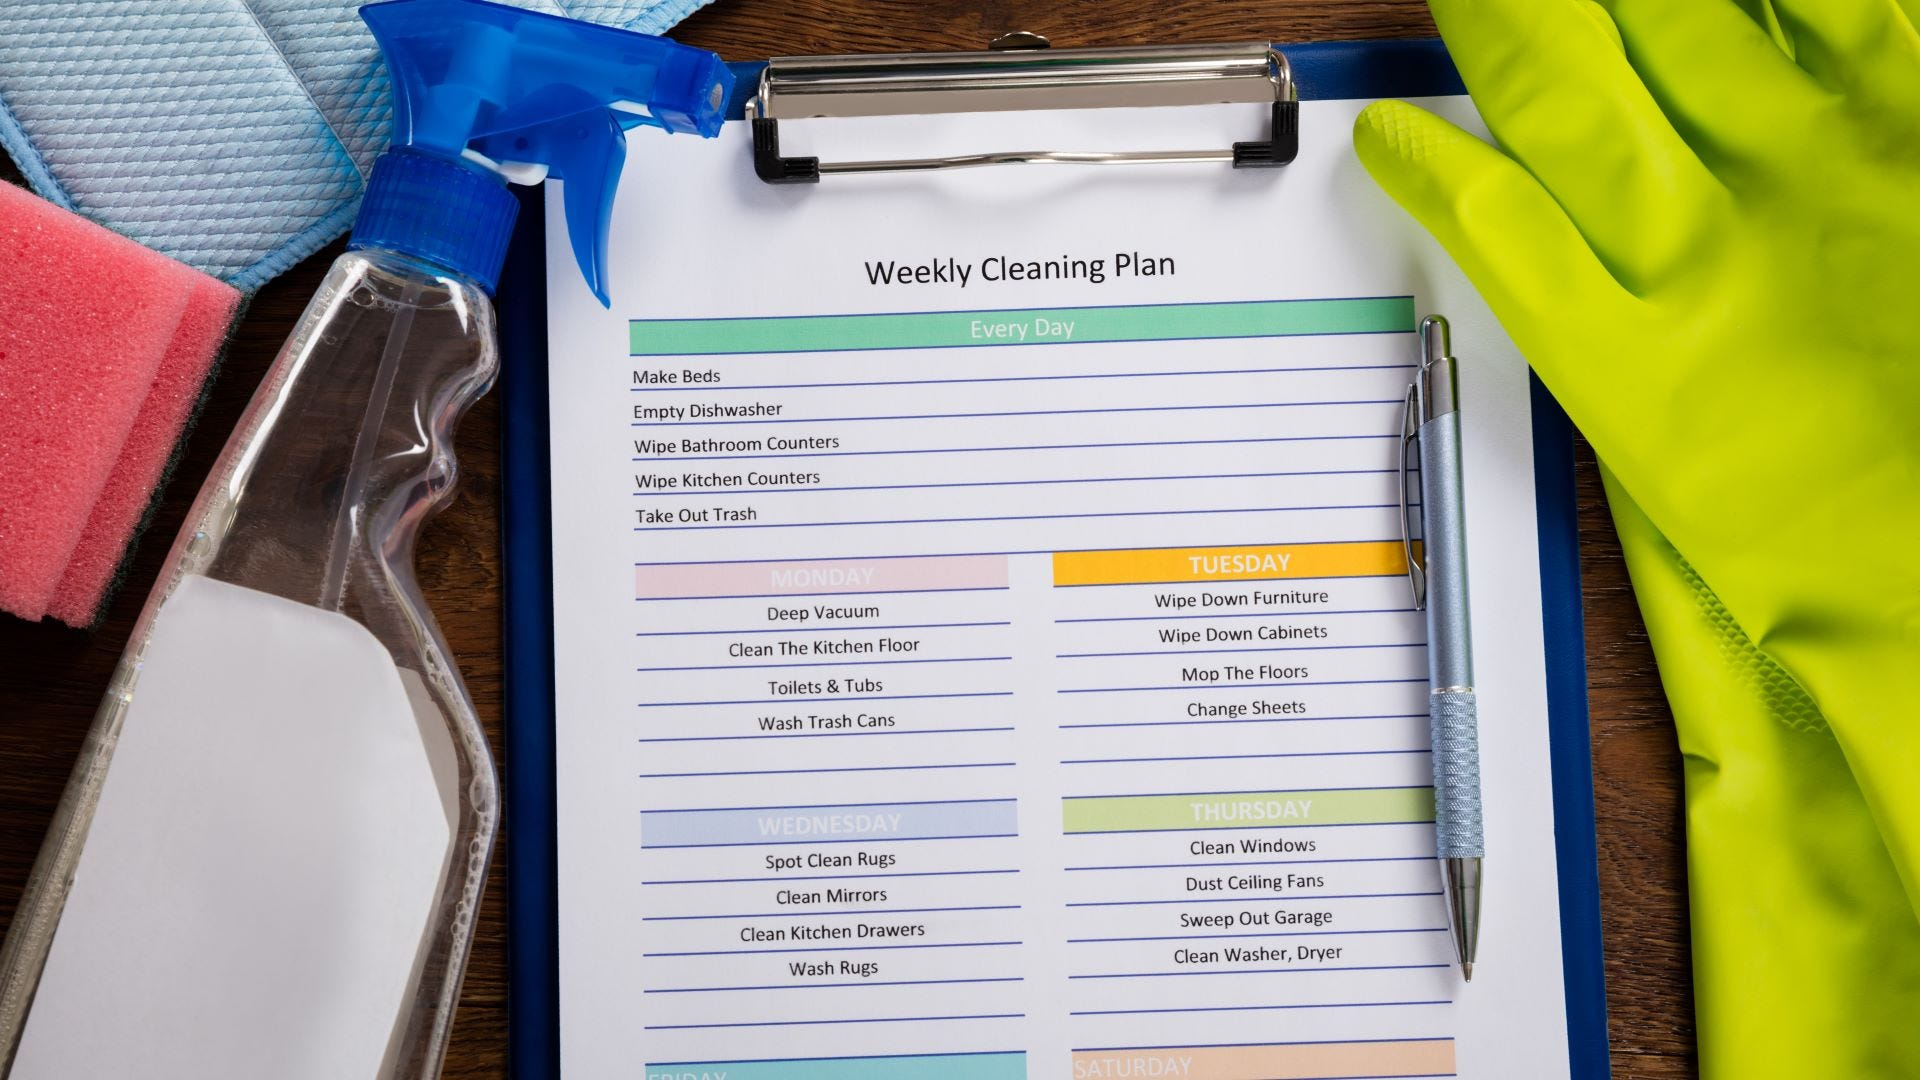 A weekly cleaning schedule on a clipboard surrounded by cleaning supplies.